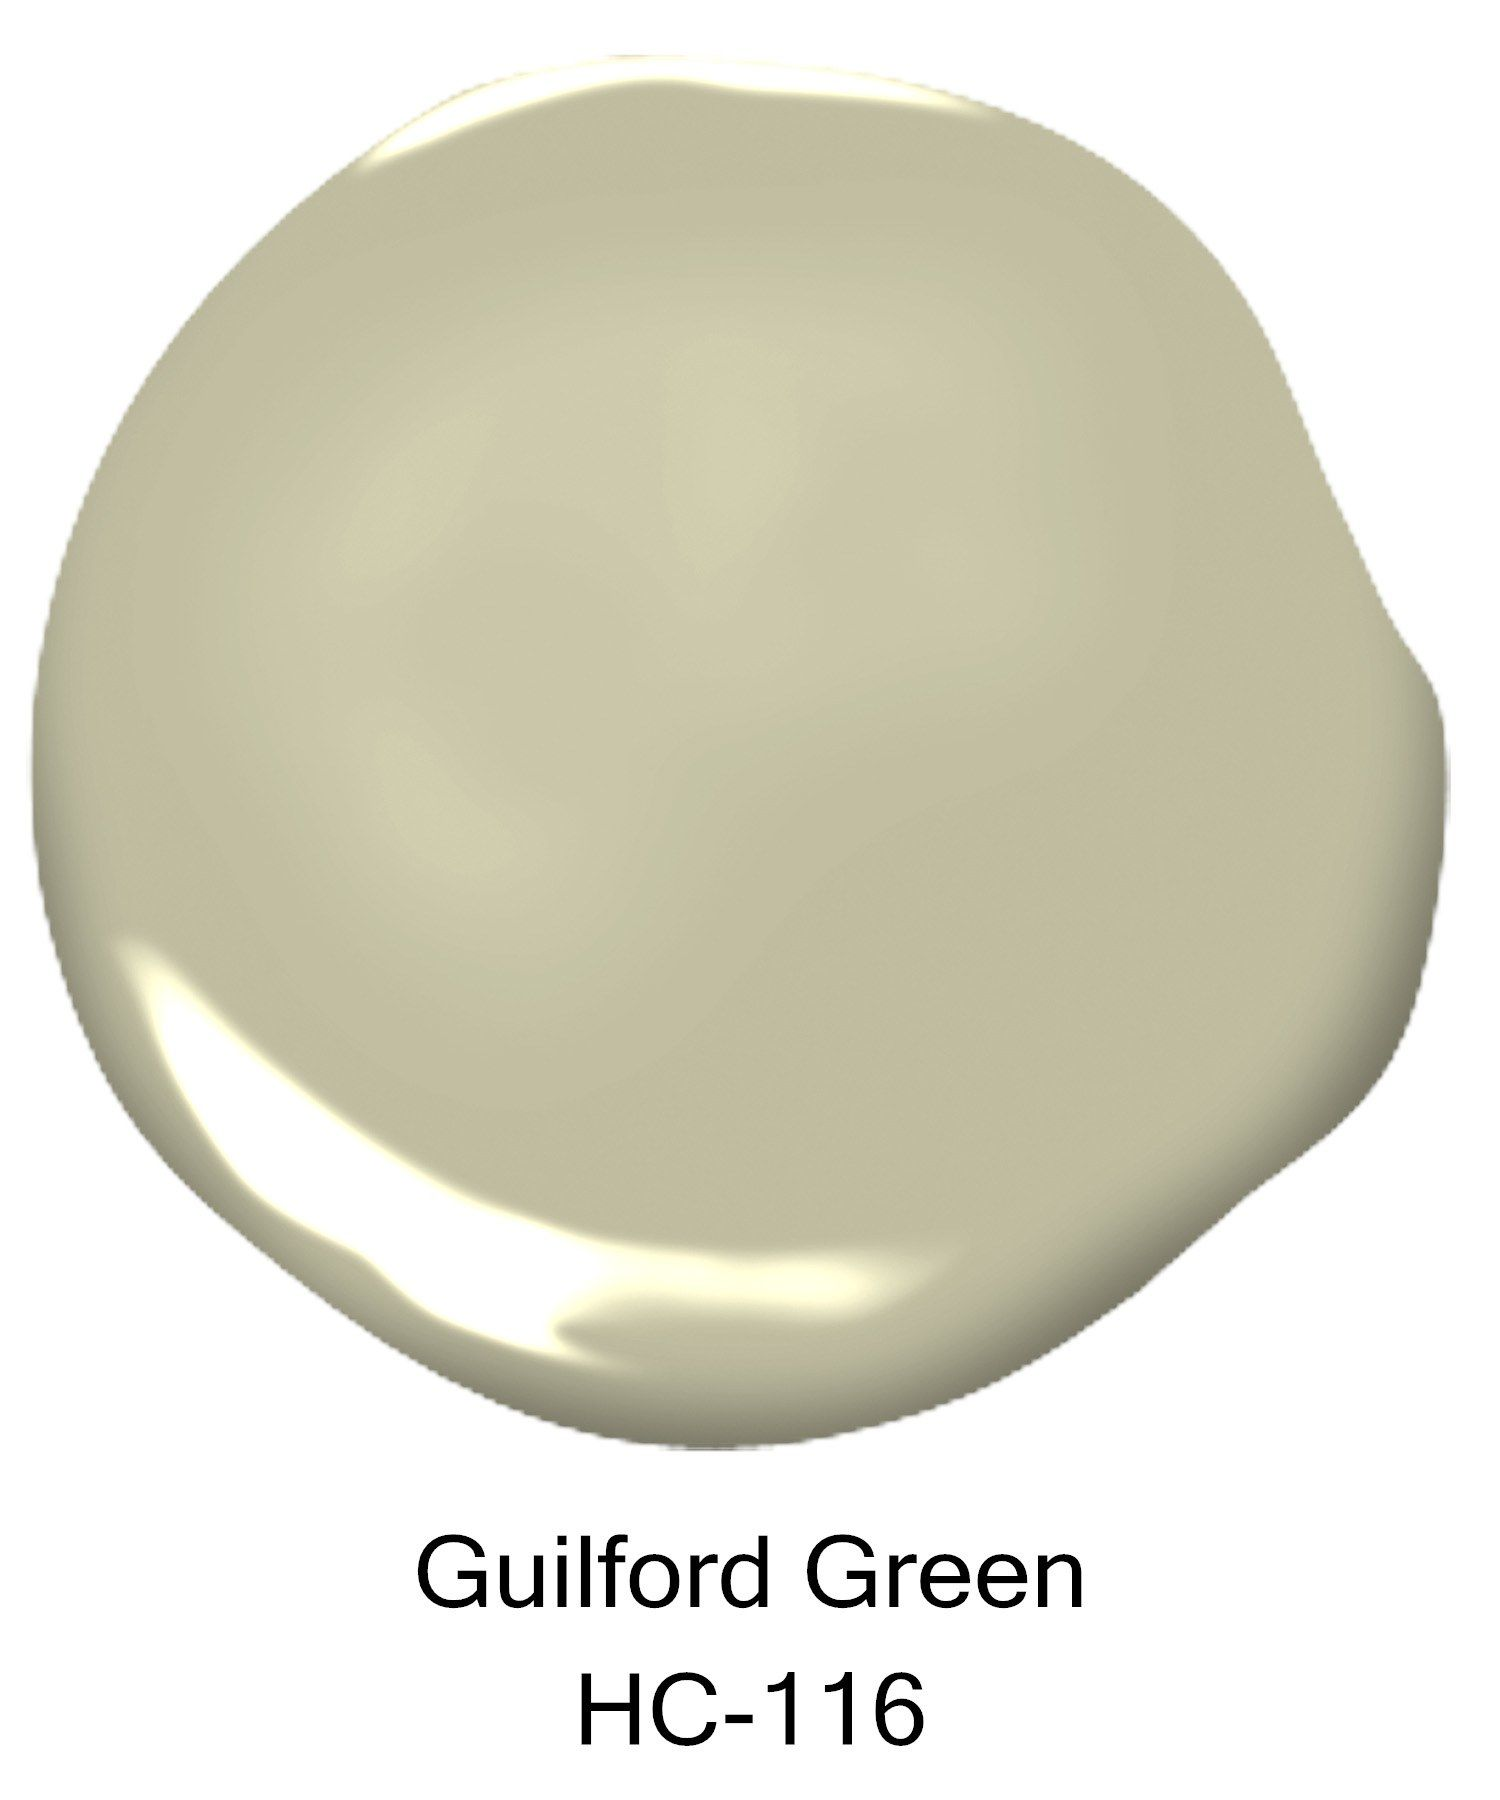 Guilford Green, Hc 116, Courtesy Of Benjamin Moore